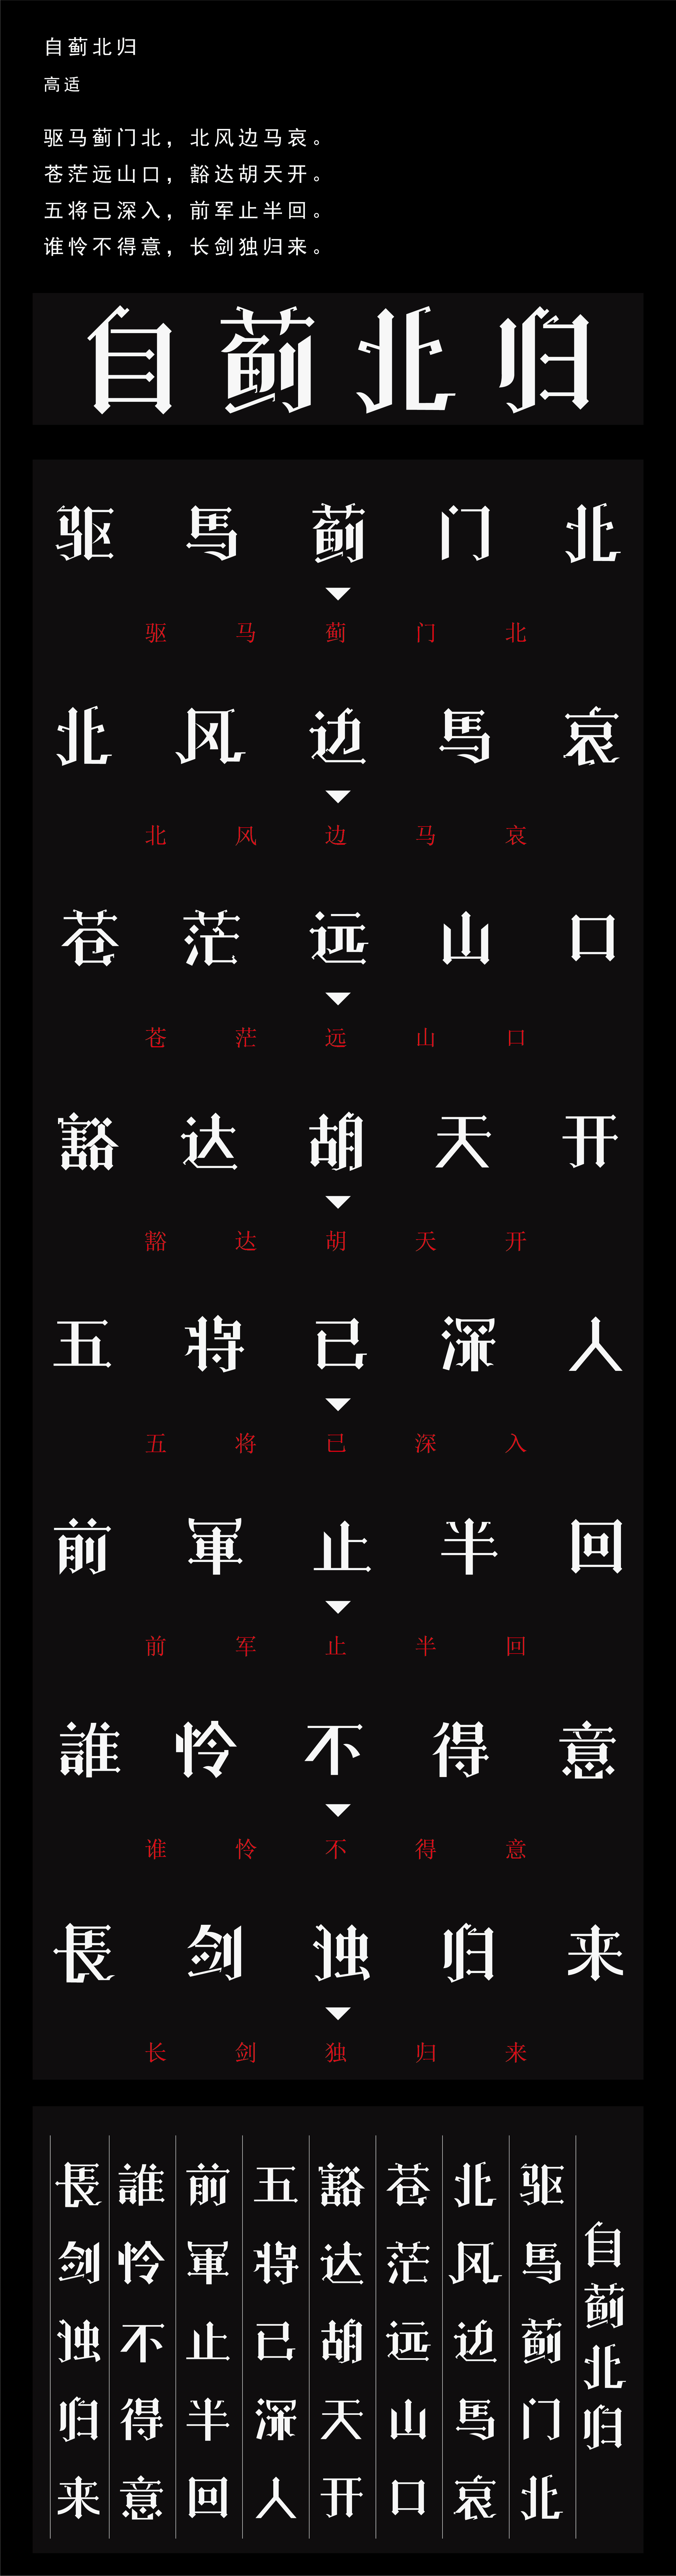 14P Collection of the latest Chinese font design schemes in 2021 #.429